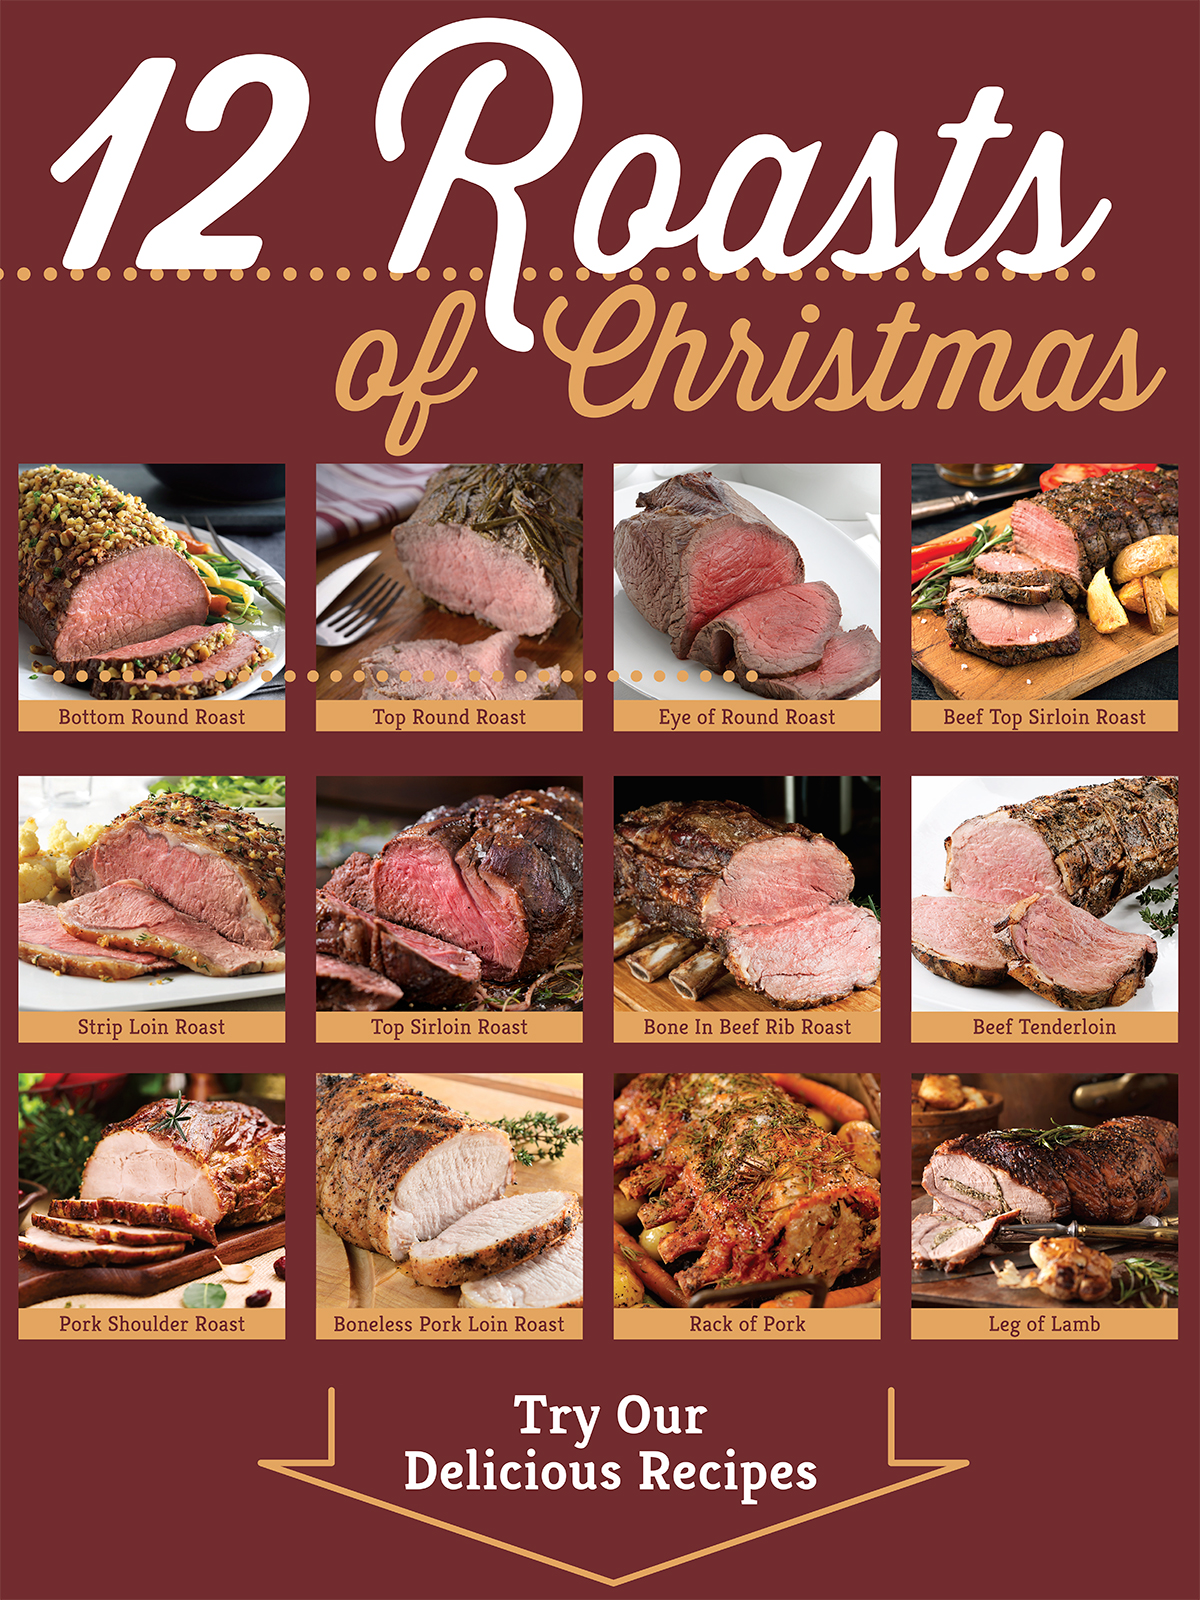 12 meat roasts for Christmas